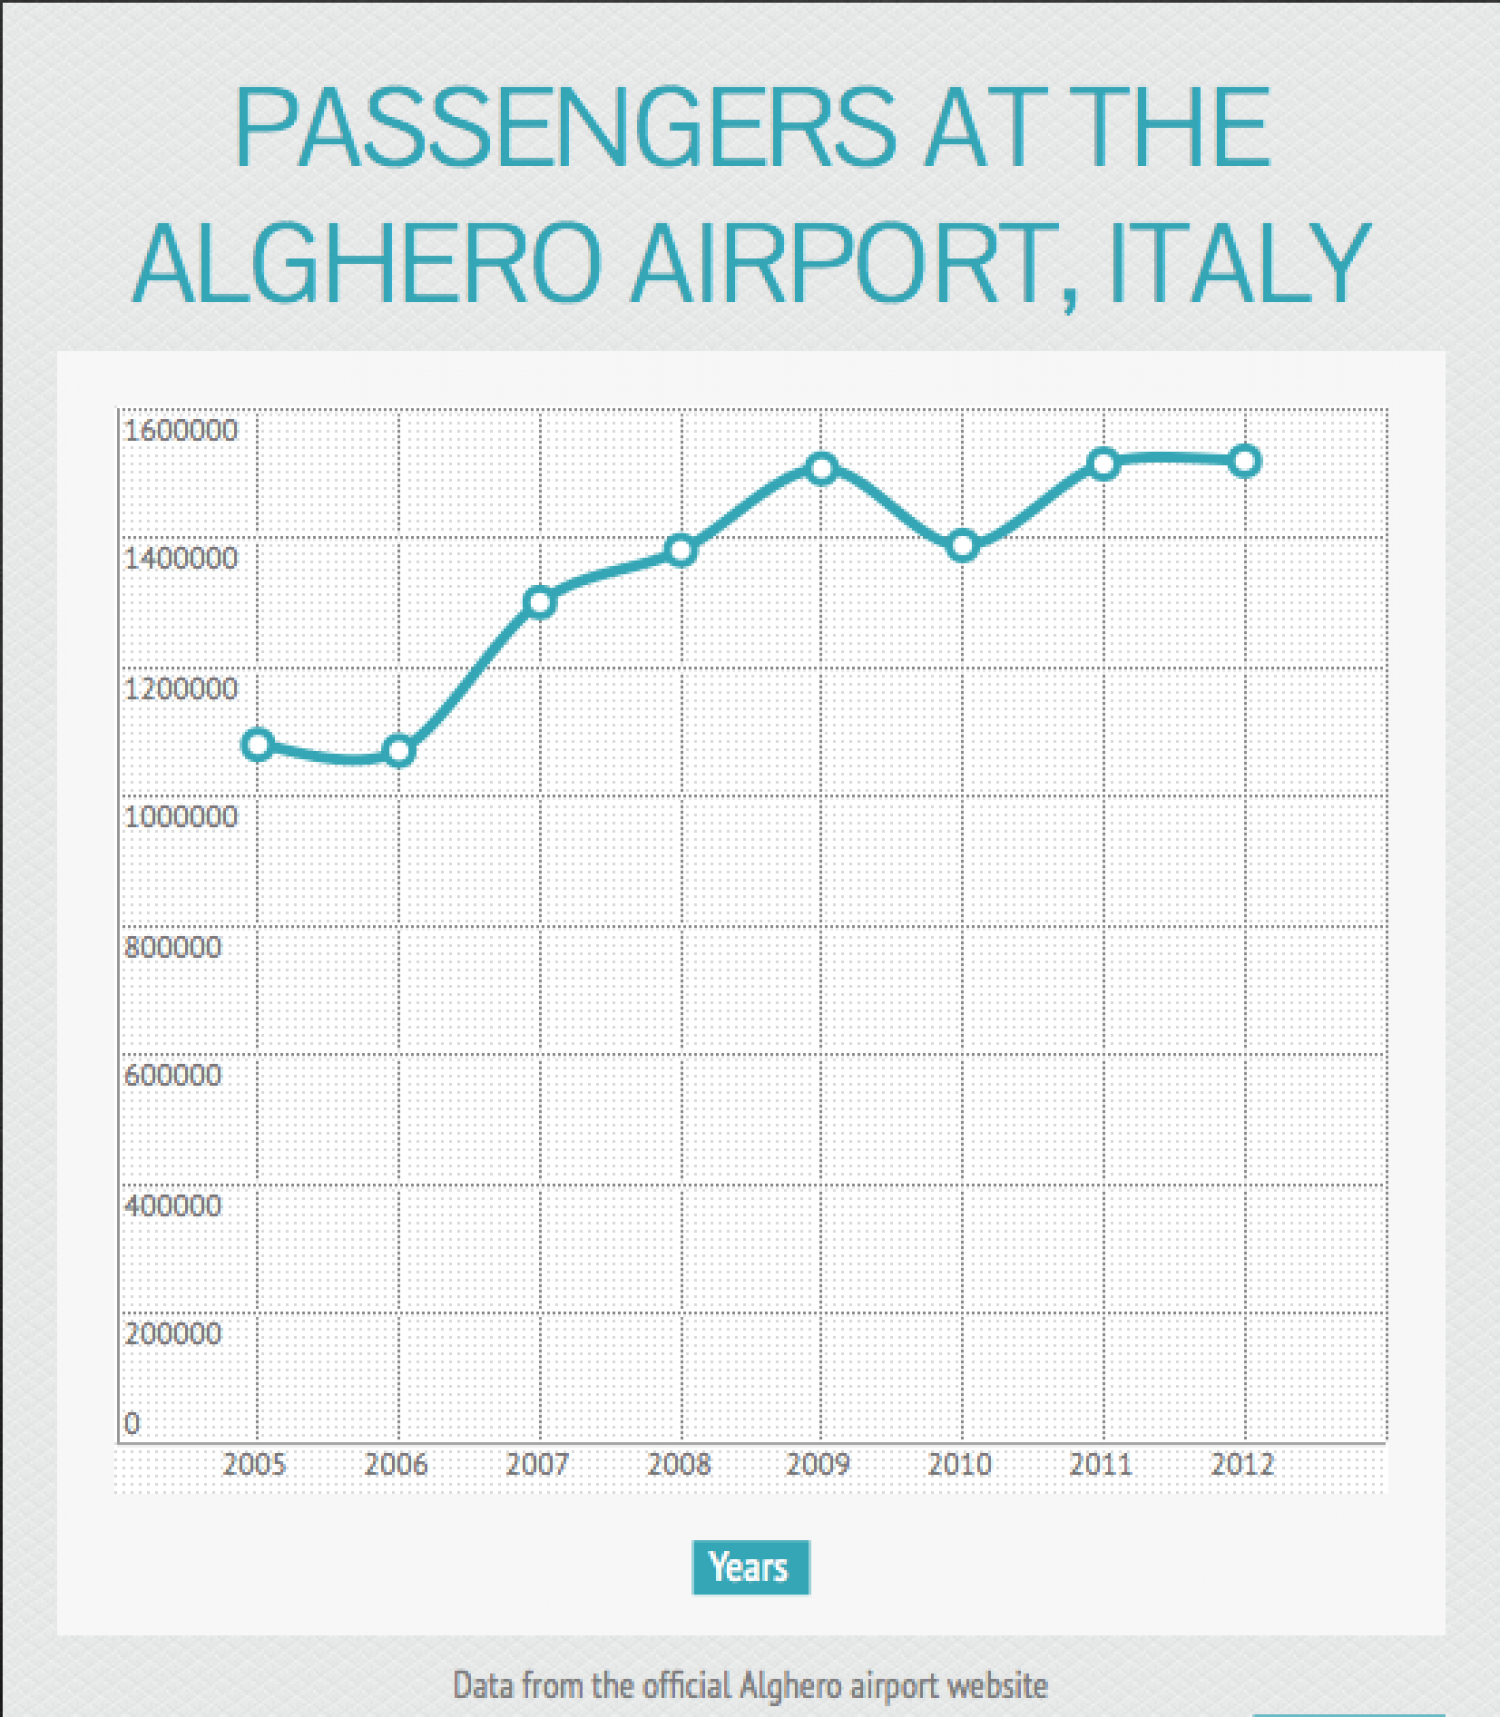 Passengers at the Alghero airport Infographic